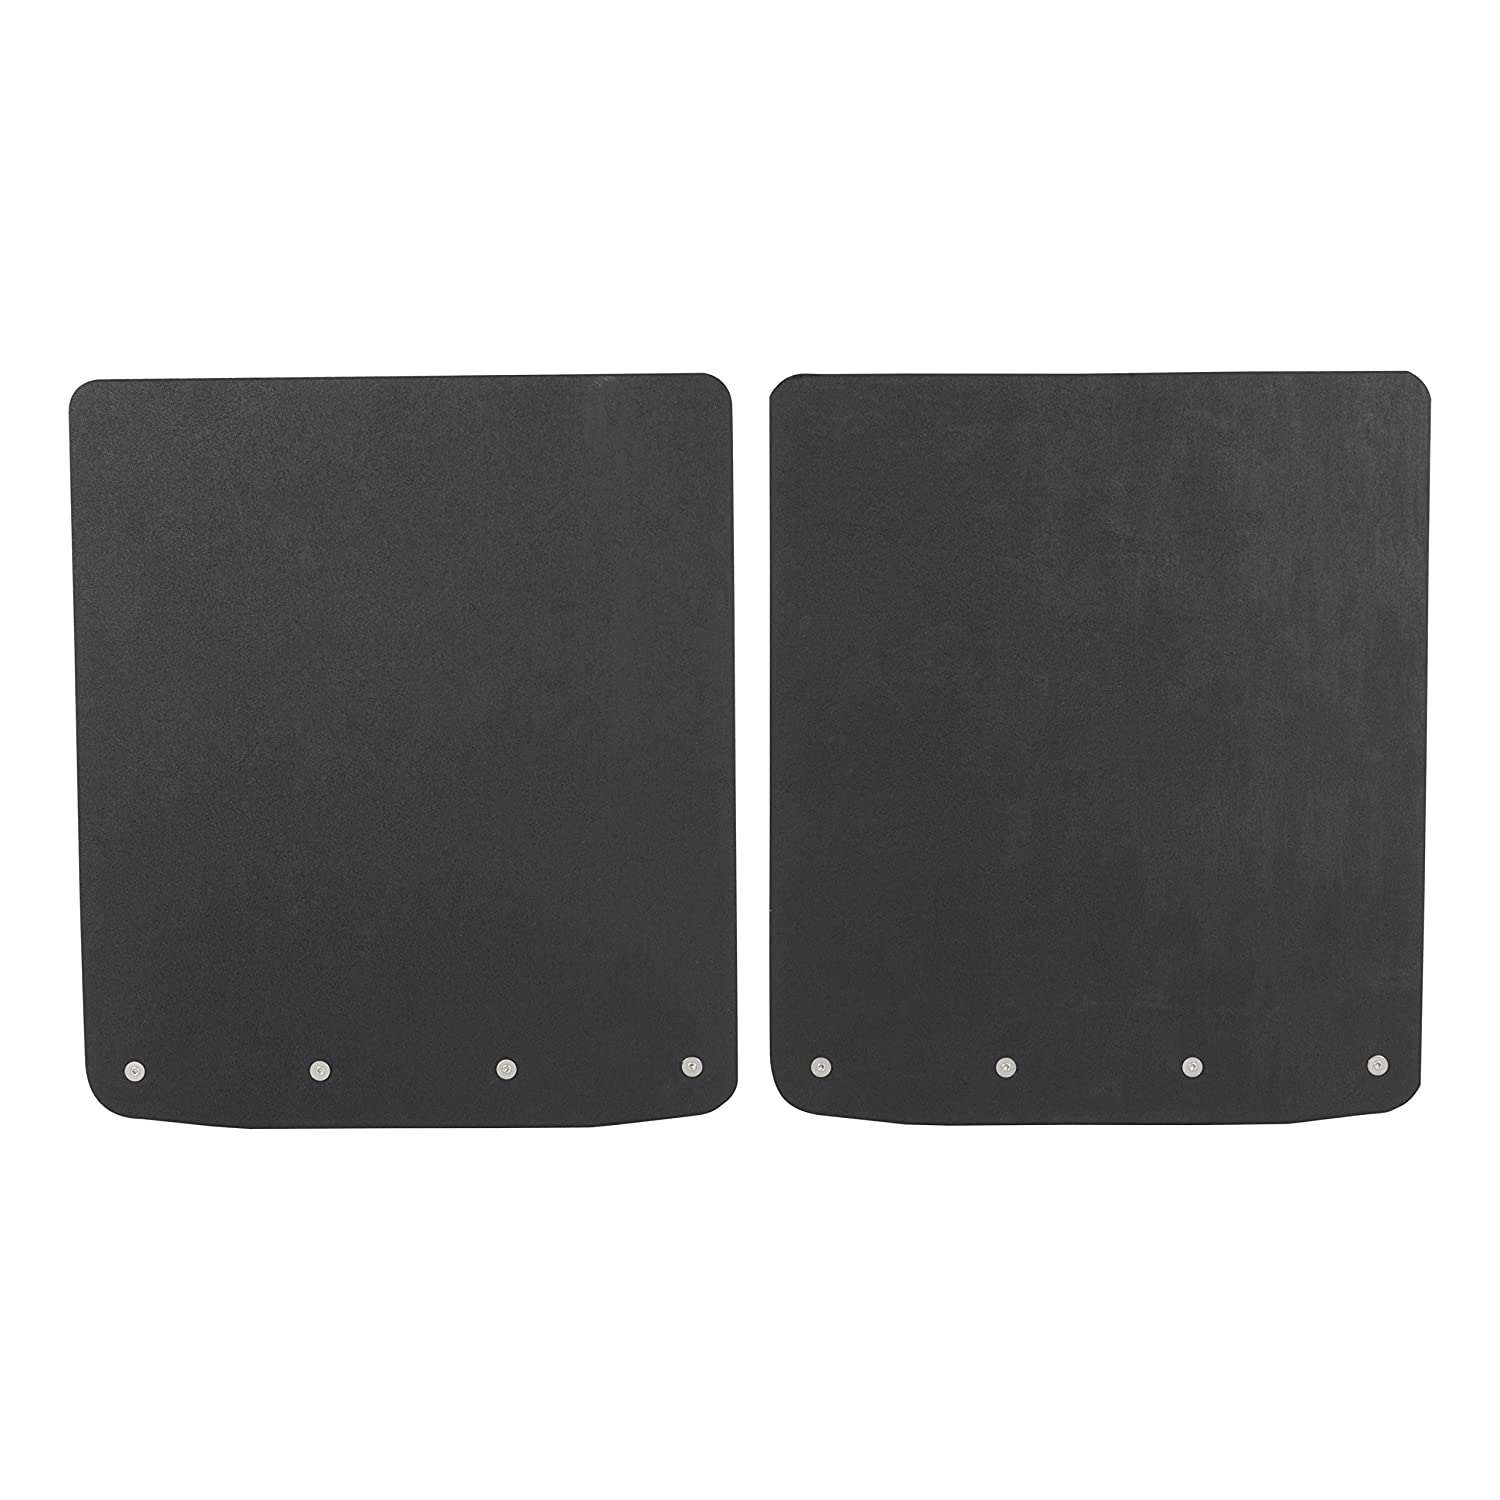 LUVERNE 252023 Universal 20 x 23-Inch Black 20 x 23 Textured Rubber Mud Guards with Stainless Steel Plates